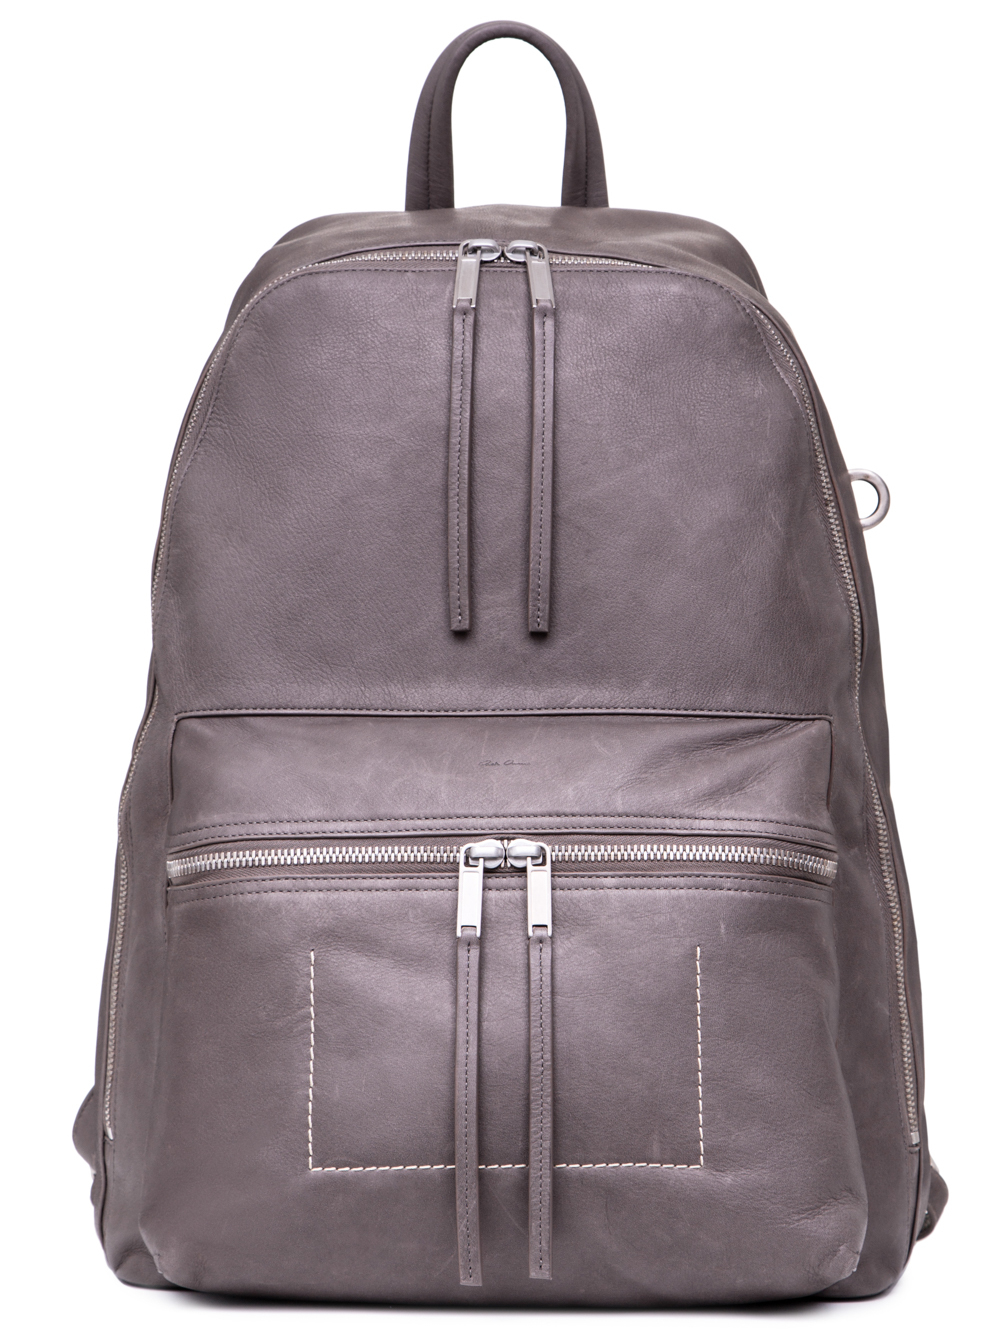 RICK OWENS SS19 BABEL BACKPACK IN DUST GREY CALF LEATHER